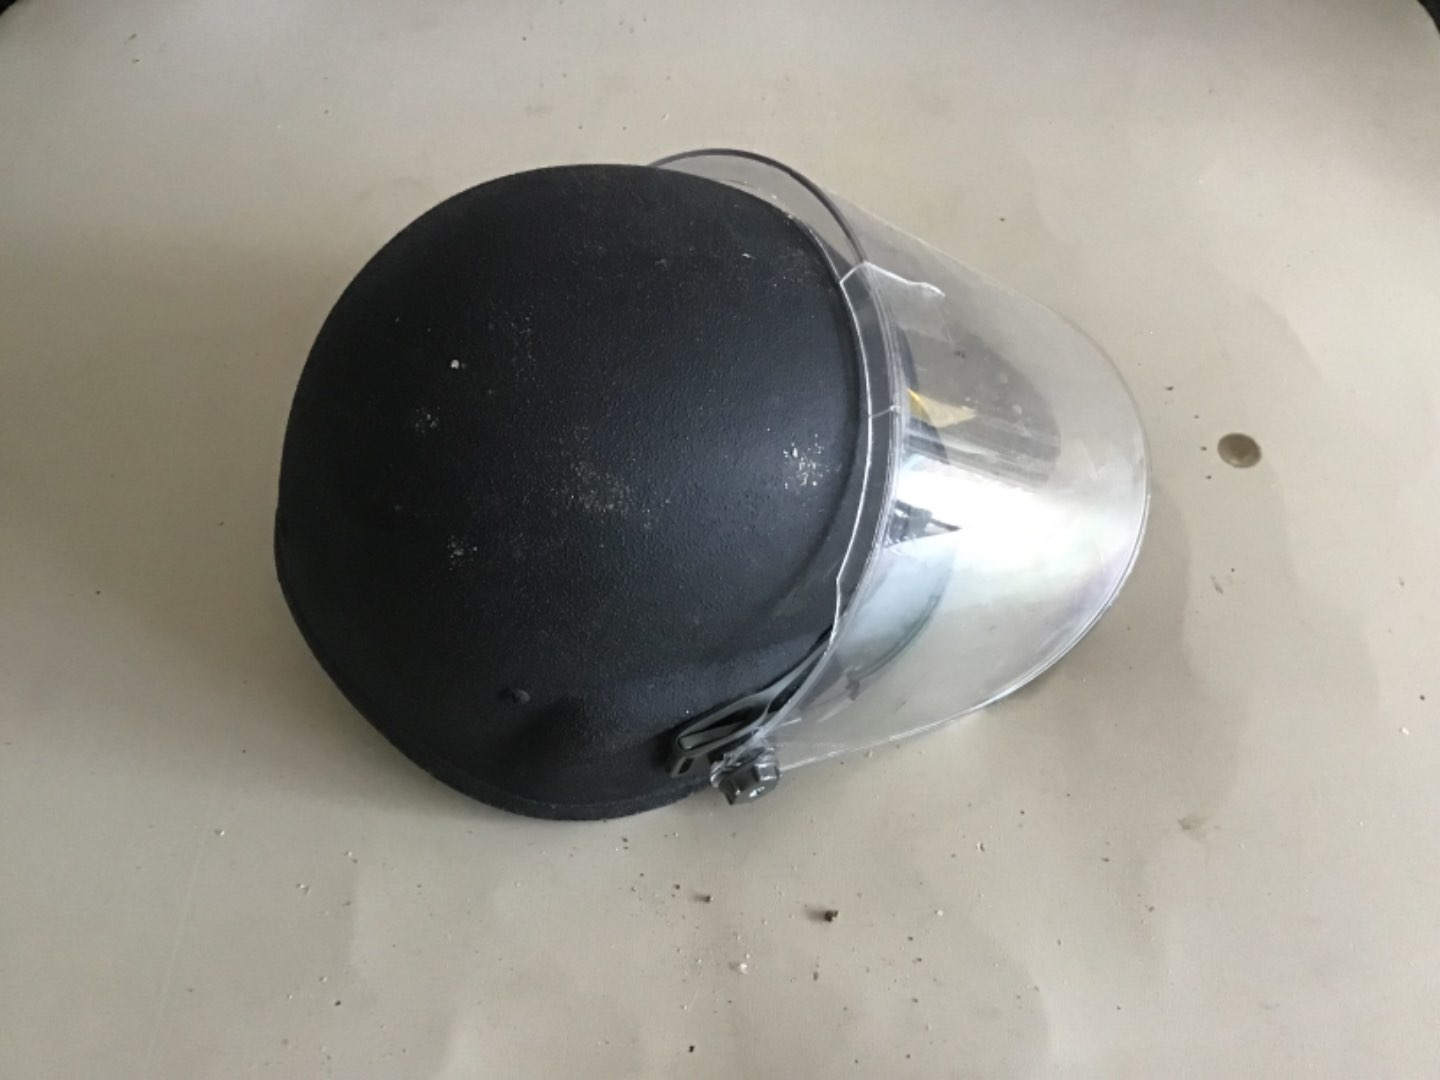 Lot # 148 US MILITARY or Riot Police Helmet w/shield - See Descrip in Lot 142